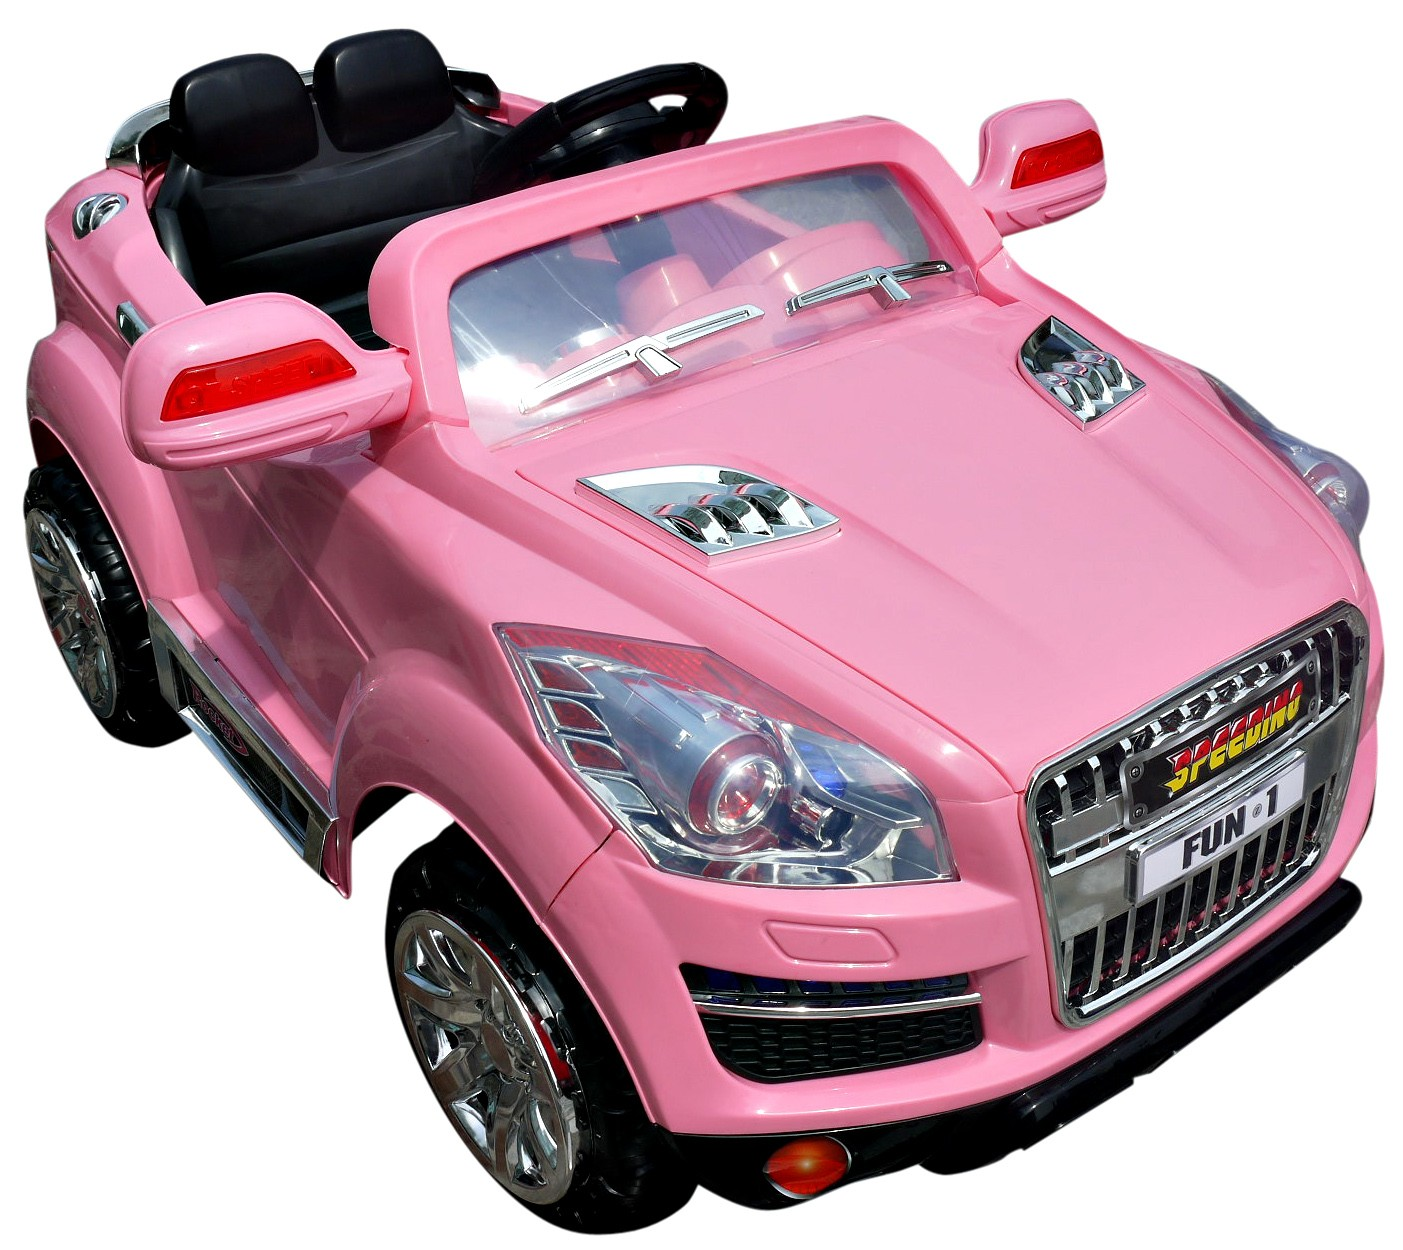 Cool Toys Cars : Buy kids electric cars childs battery powered ride on toys